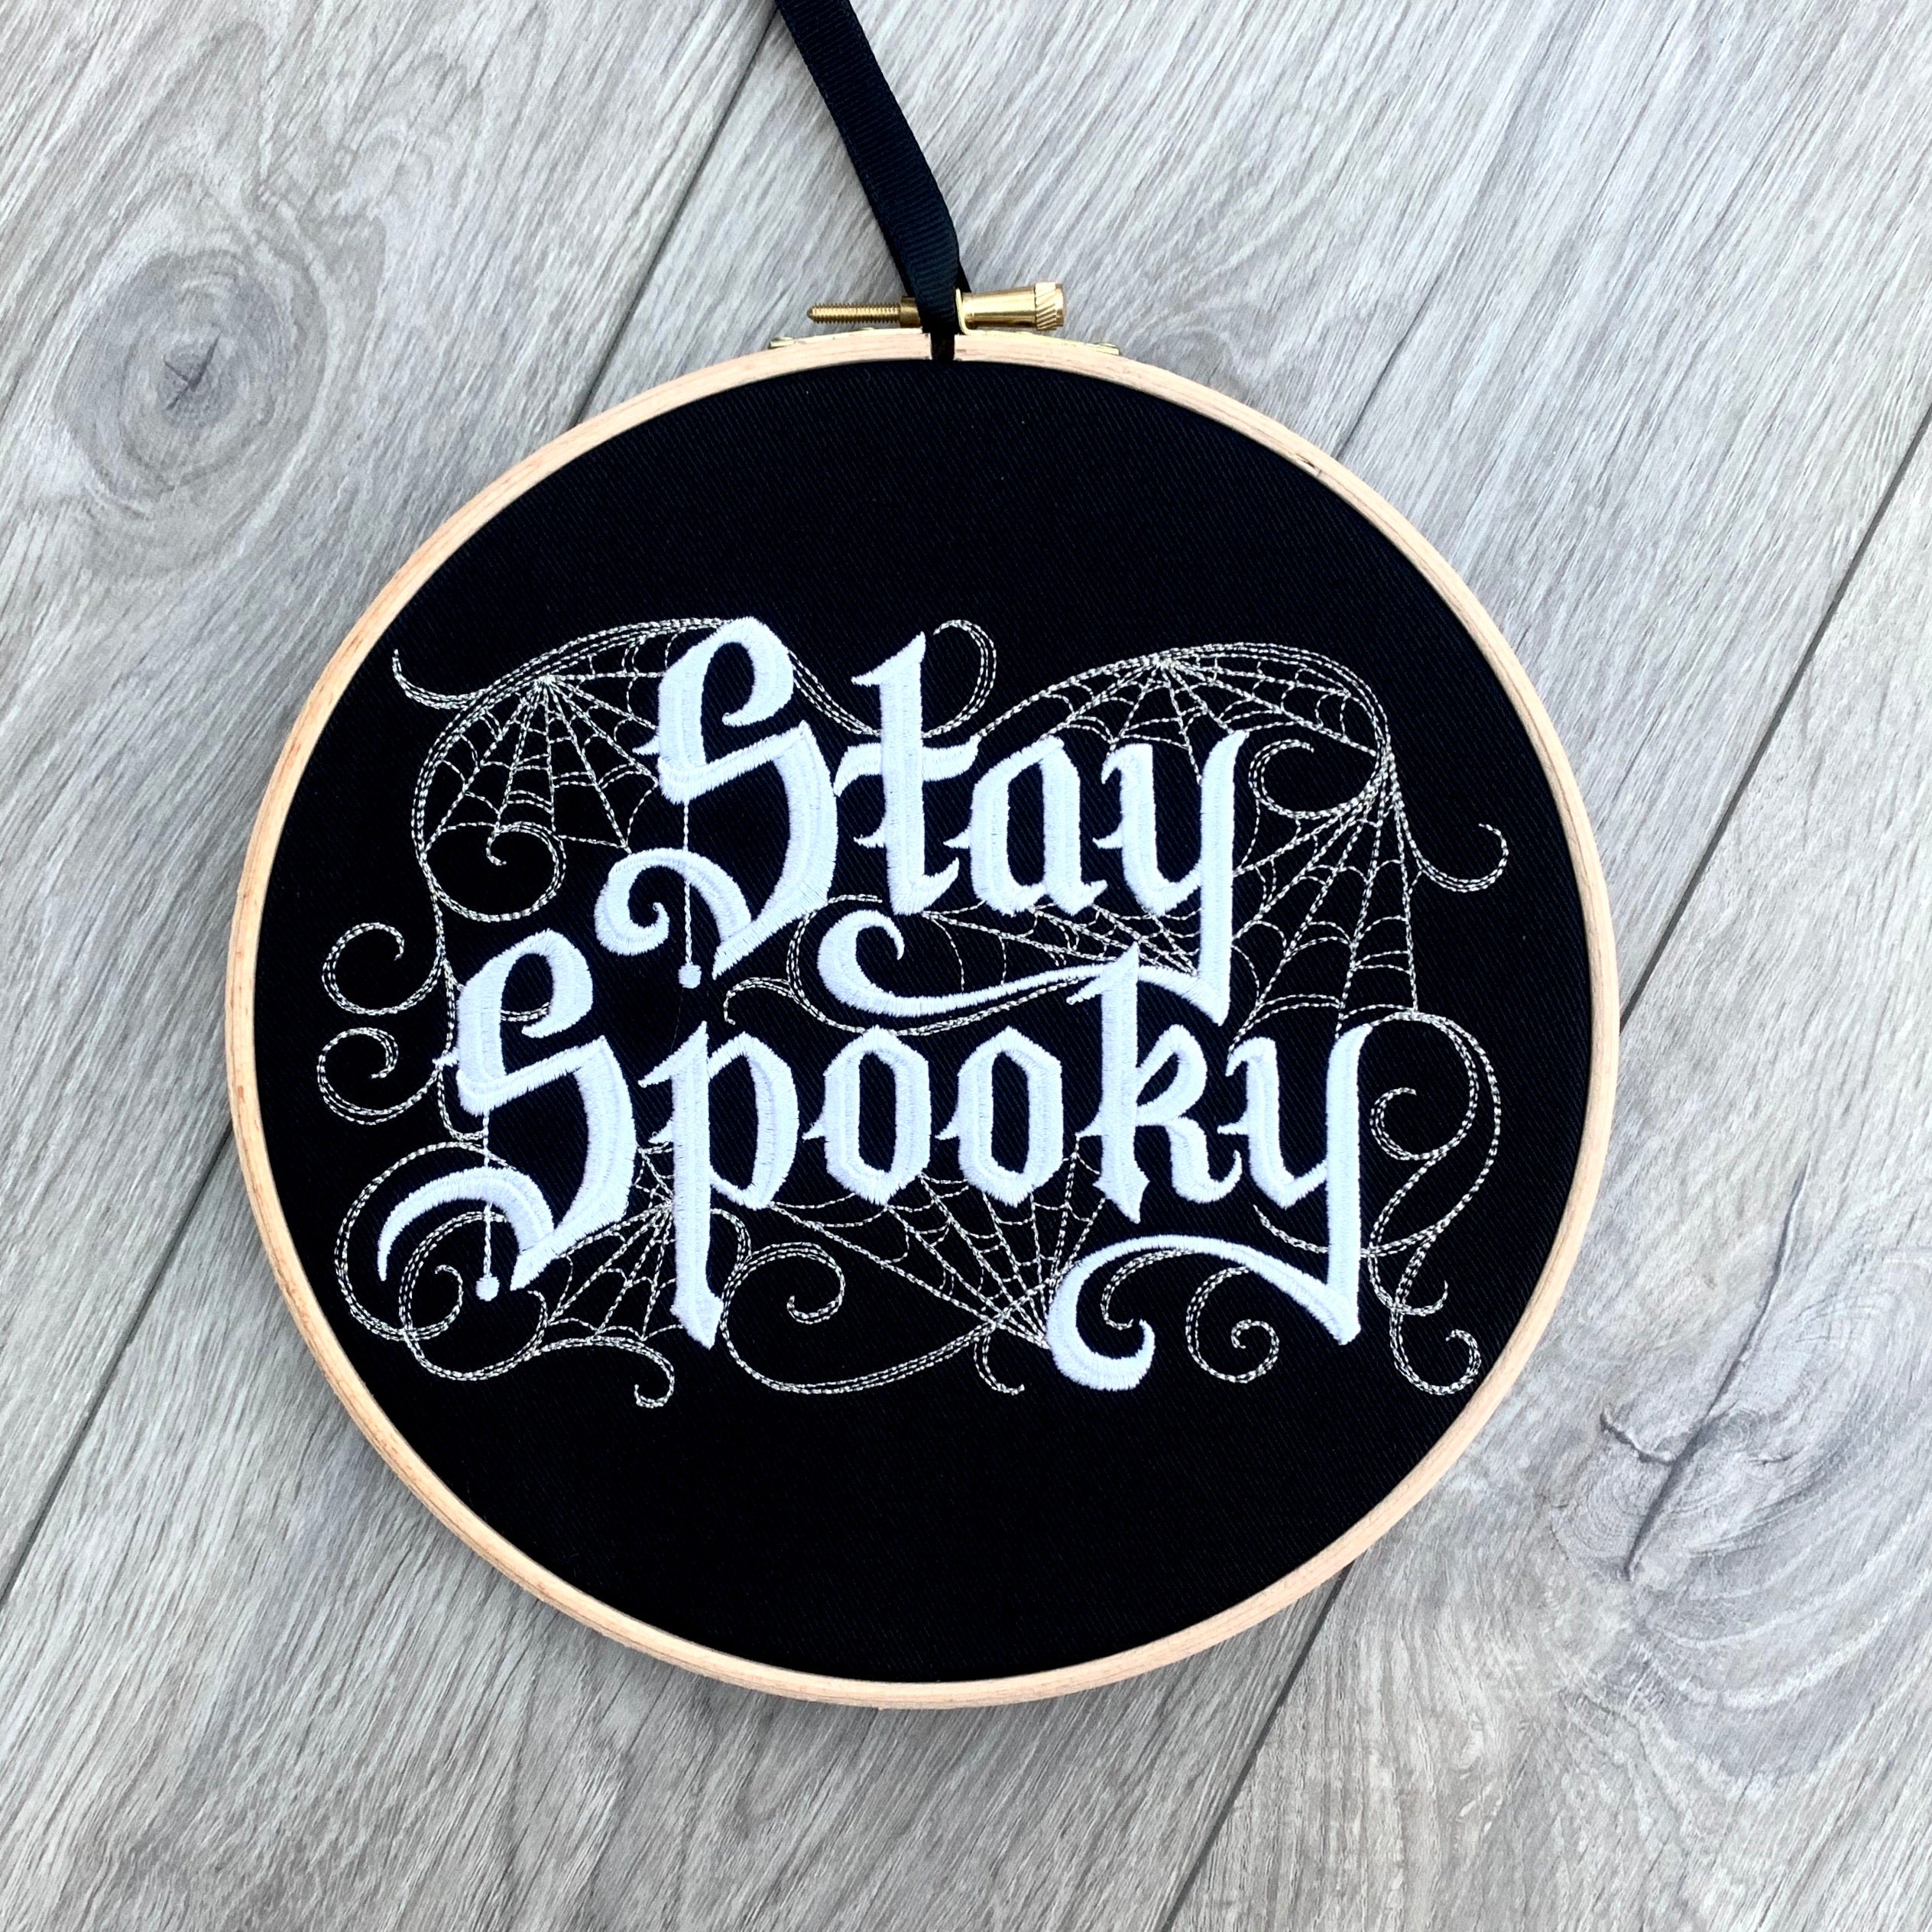 Stay spooky, Gothic Embroidery hoop art